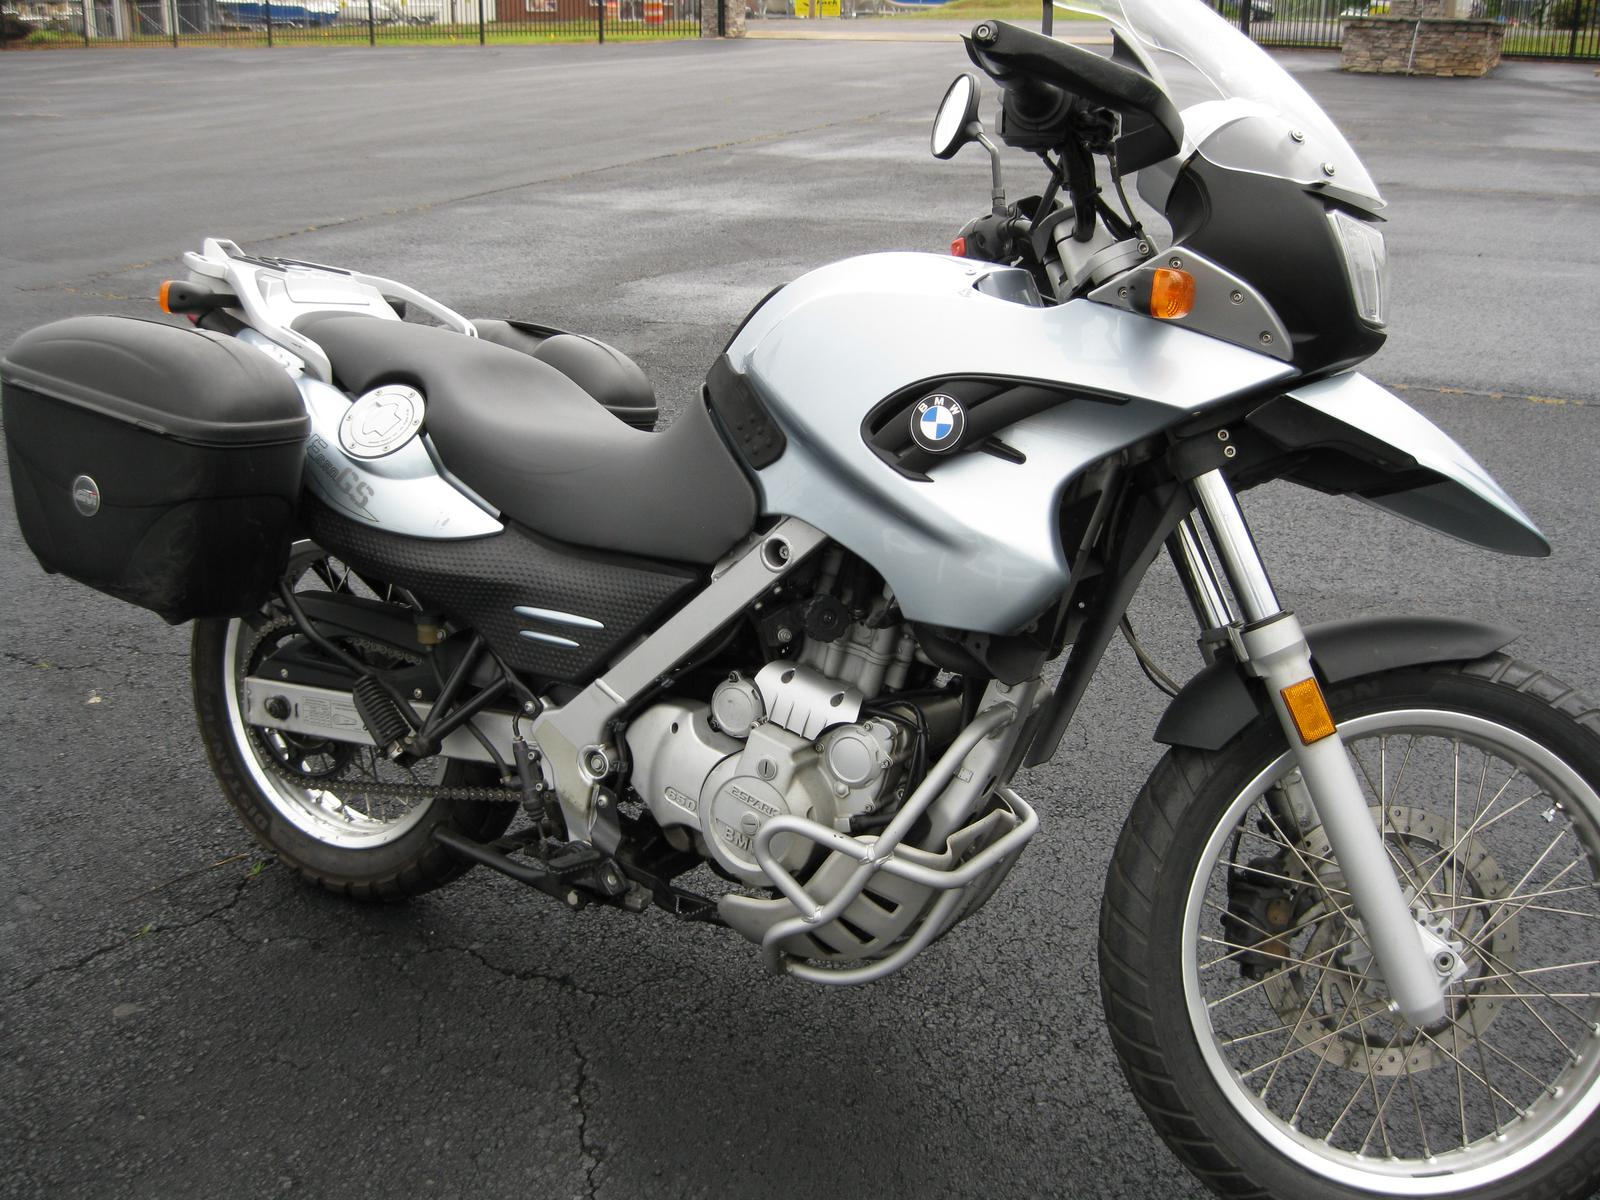 2005 Bmw F650gs For Sale In Buford Ga Hourglass Cycles 678 367 0092